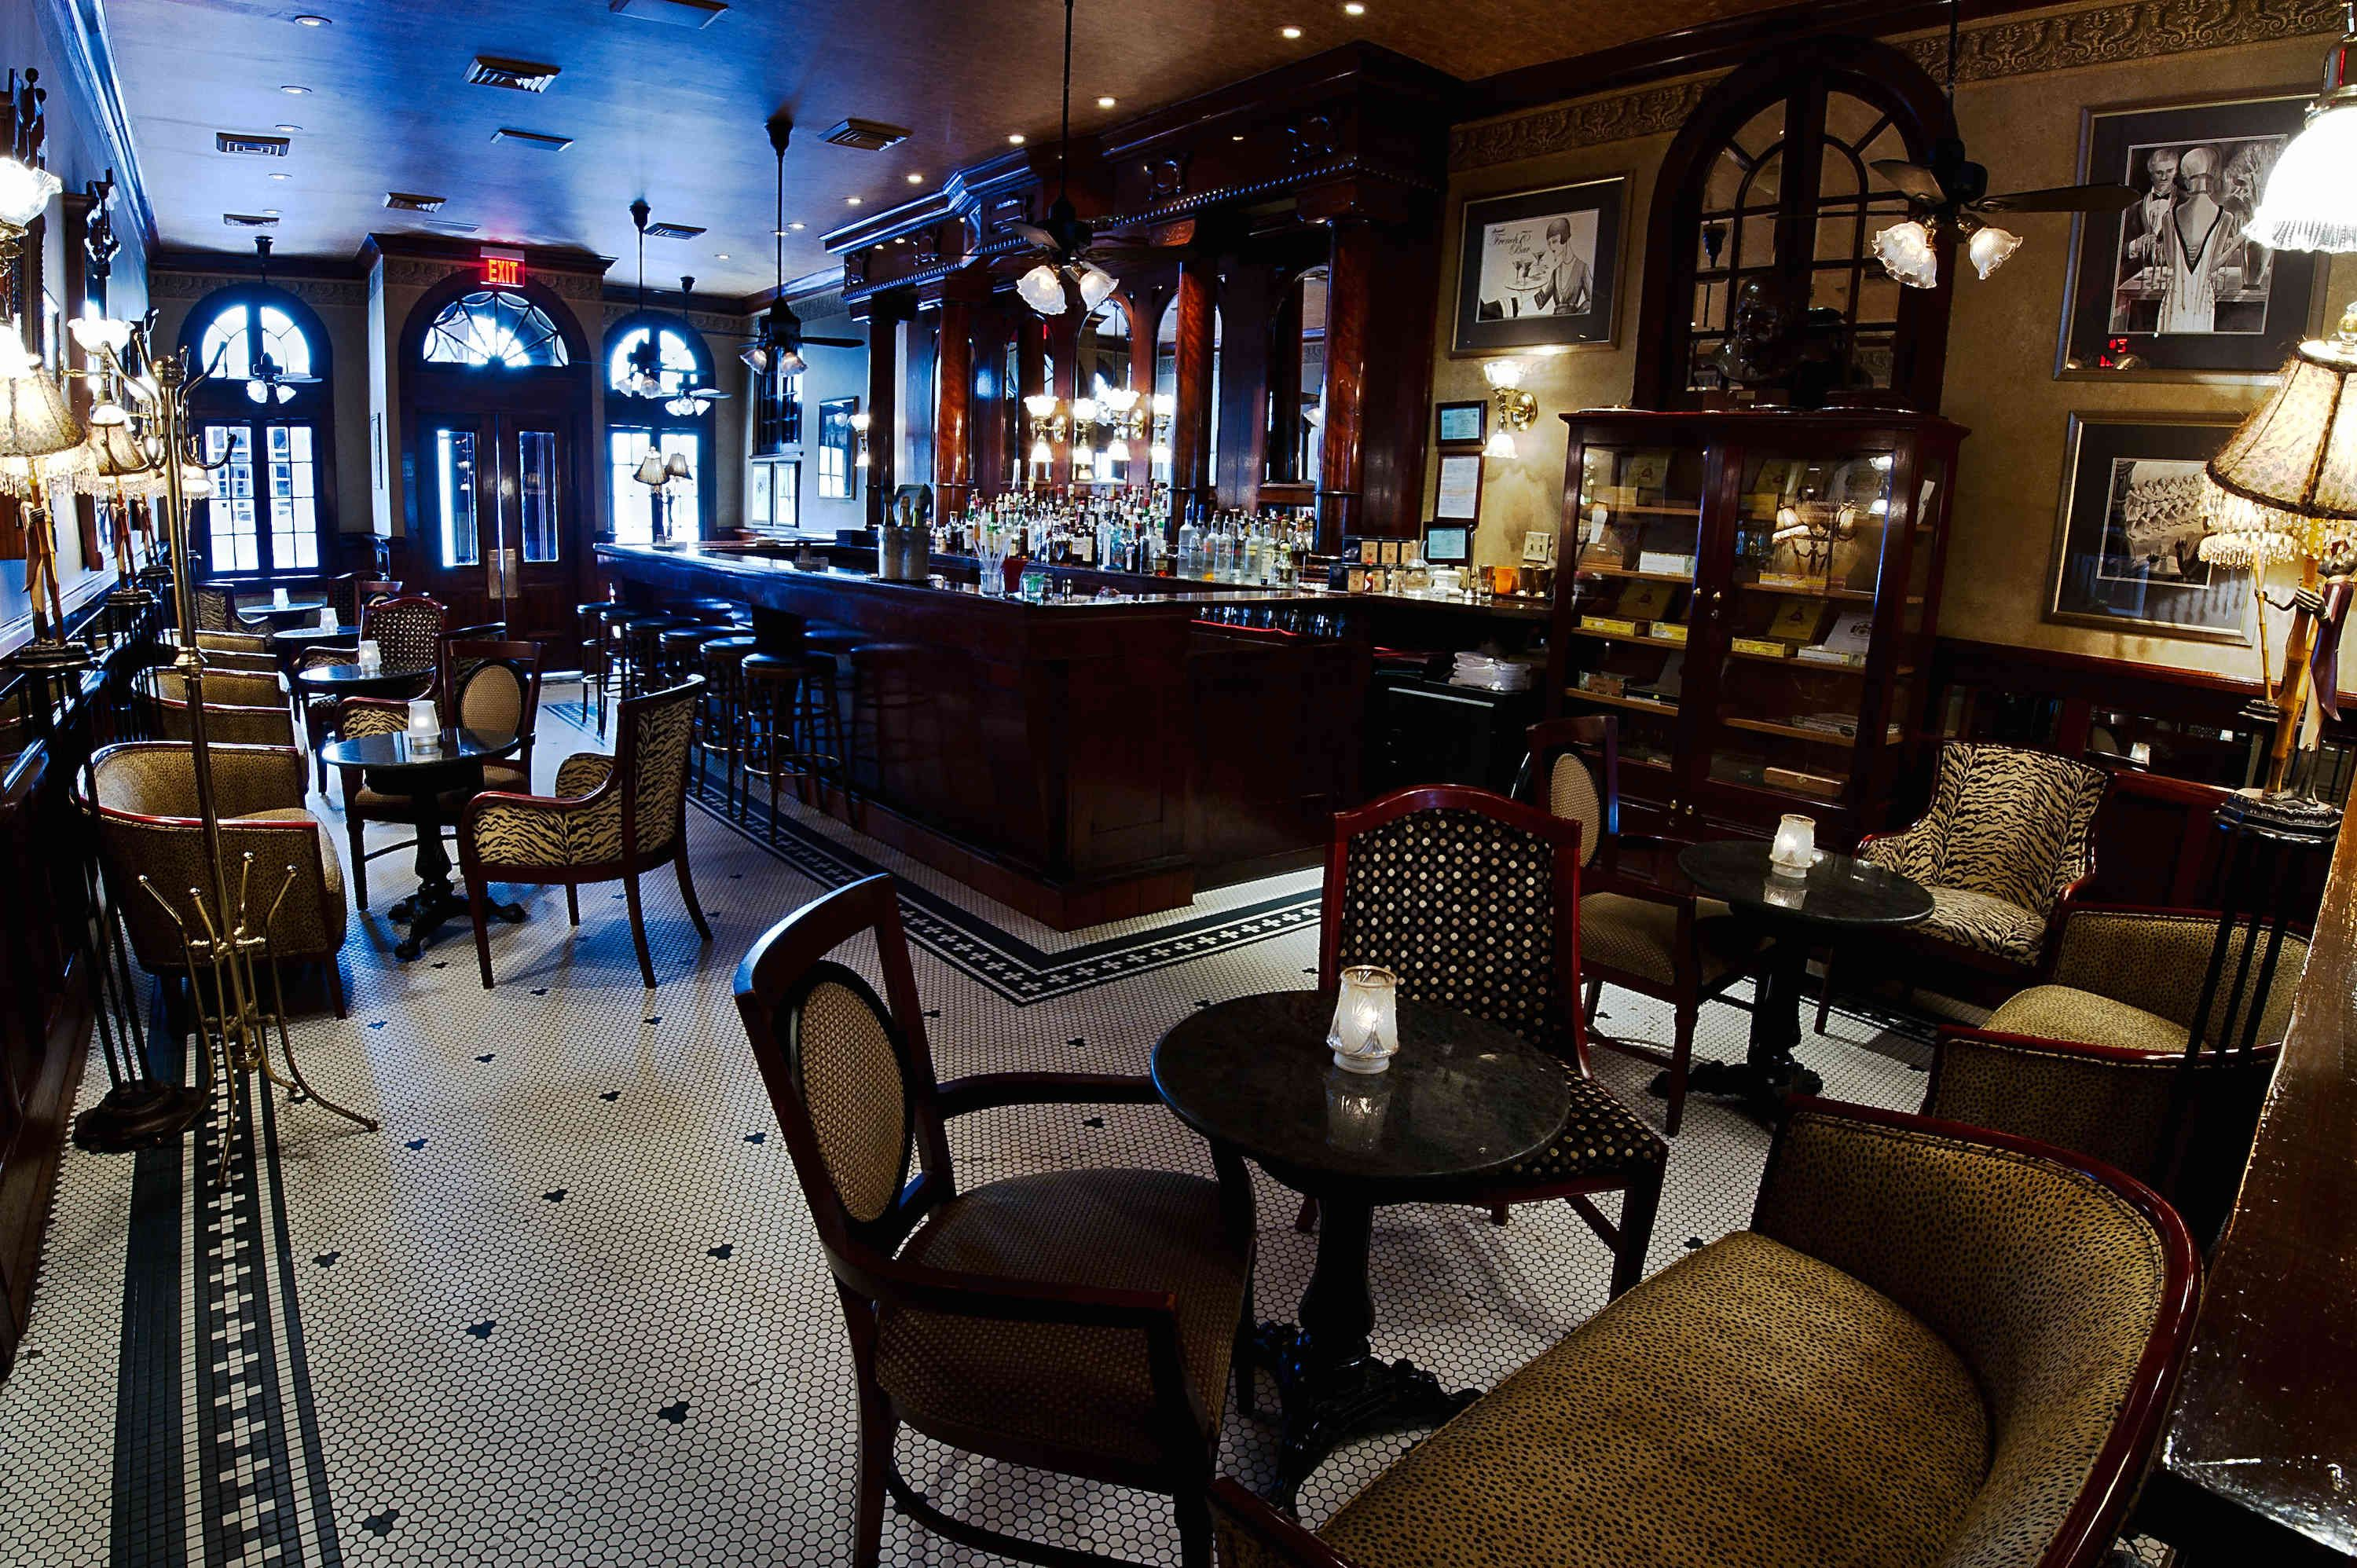 Pin by Gregg Luther on I love this bar | New orleans bars ...